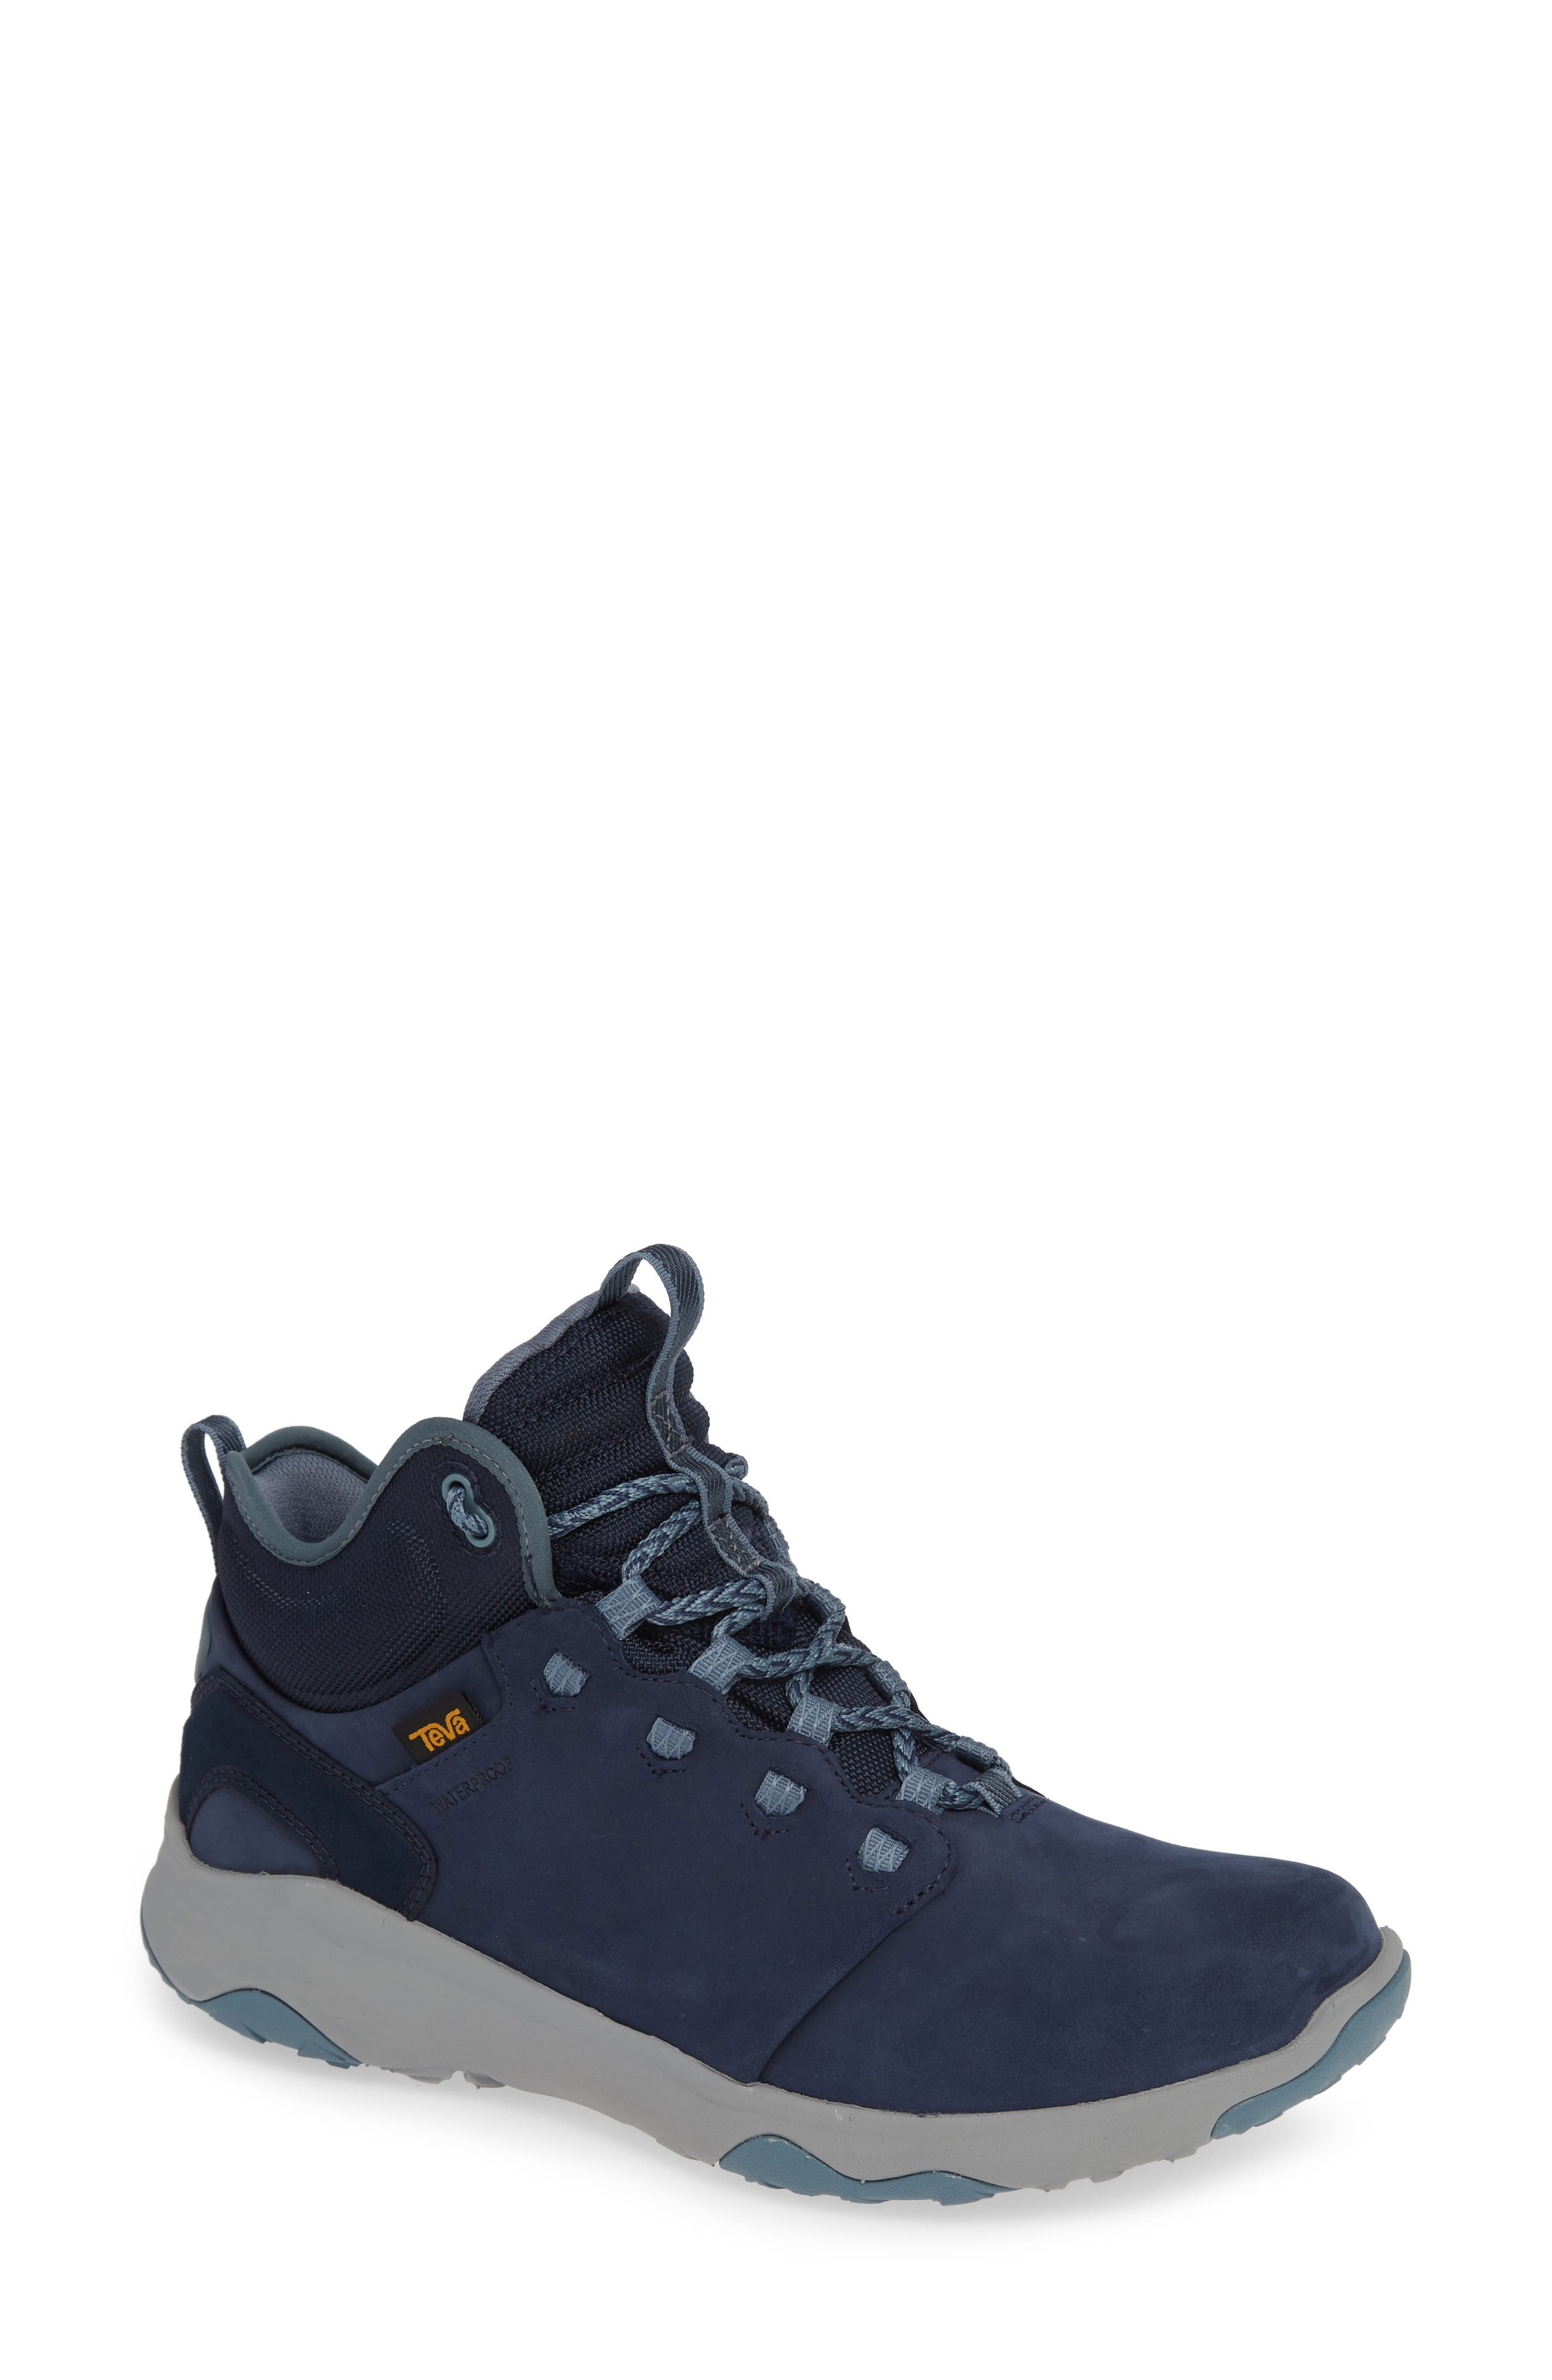 Arrowood 2 Mid Waterproof Sneaker Boot,                         Main,                         color, 414